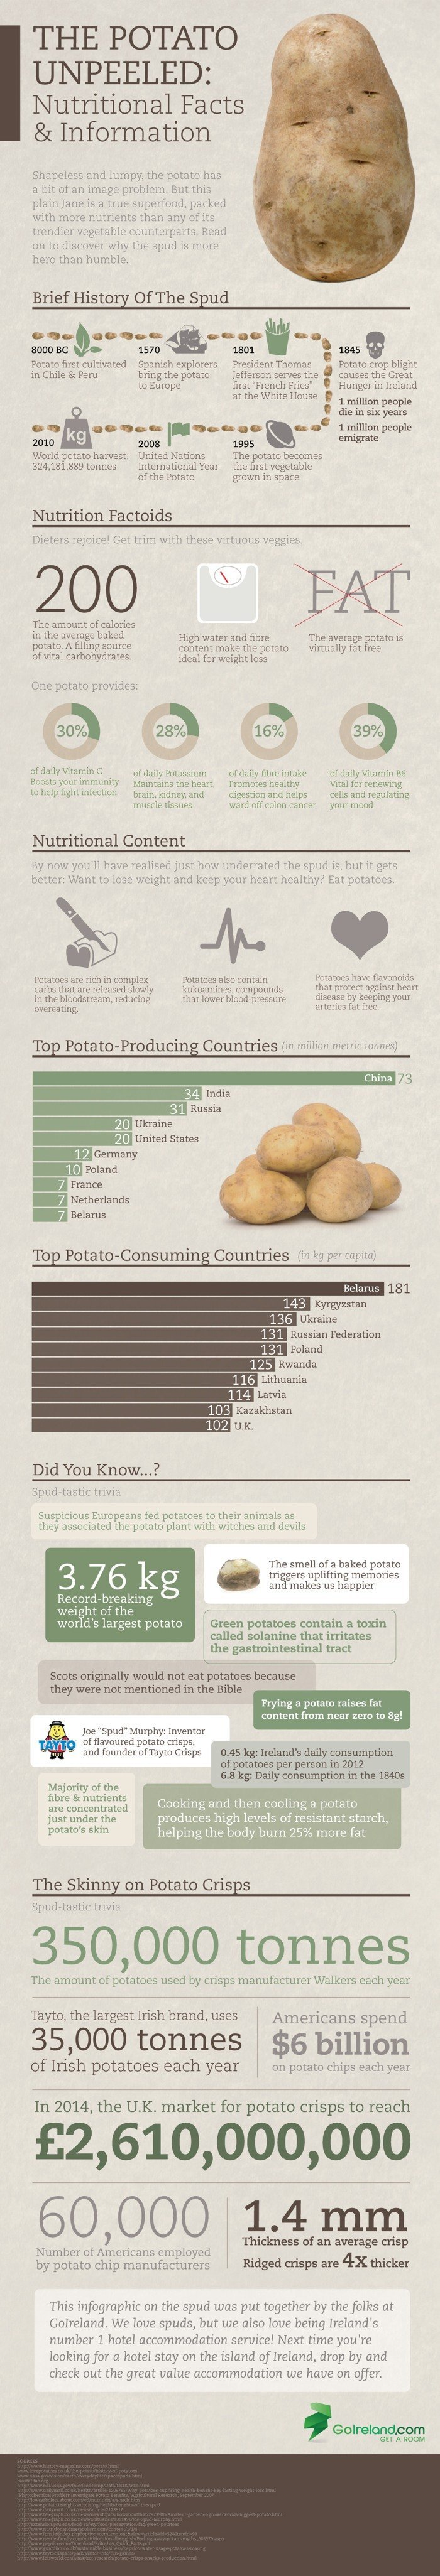 infographic-potato-nutrional-facts